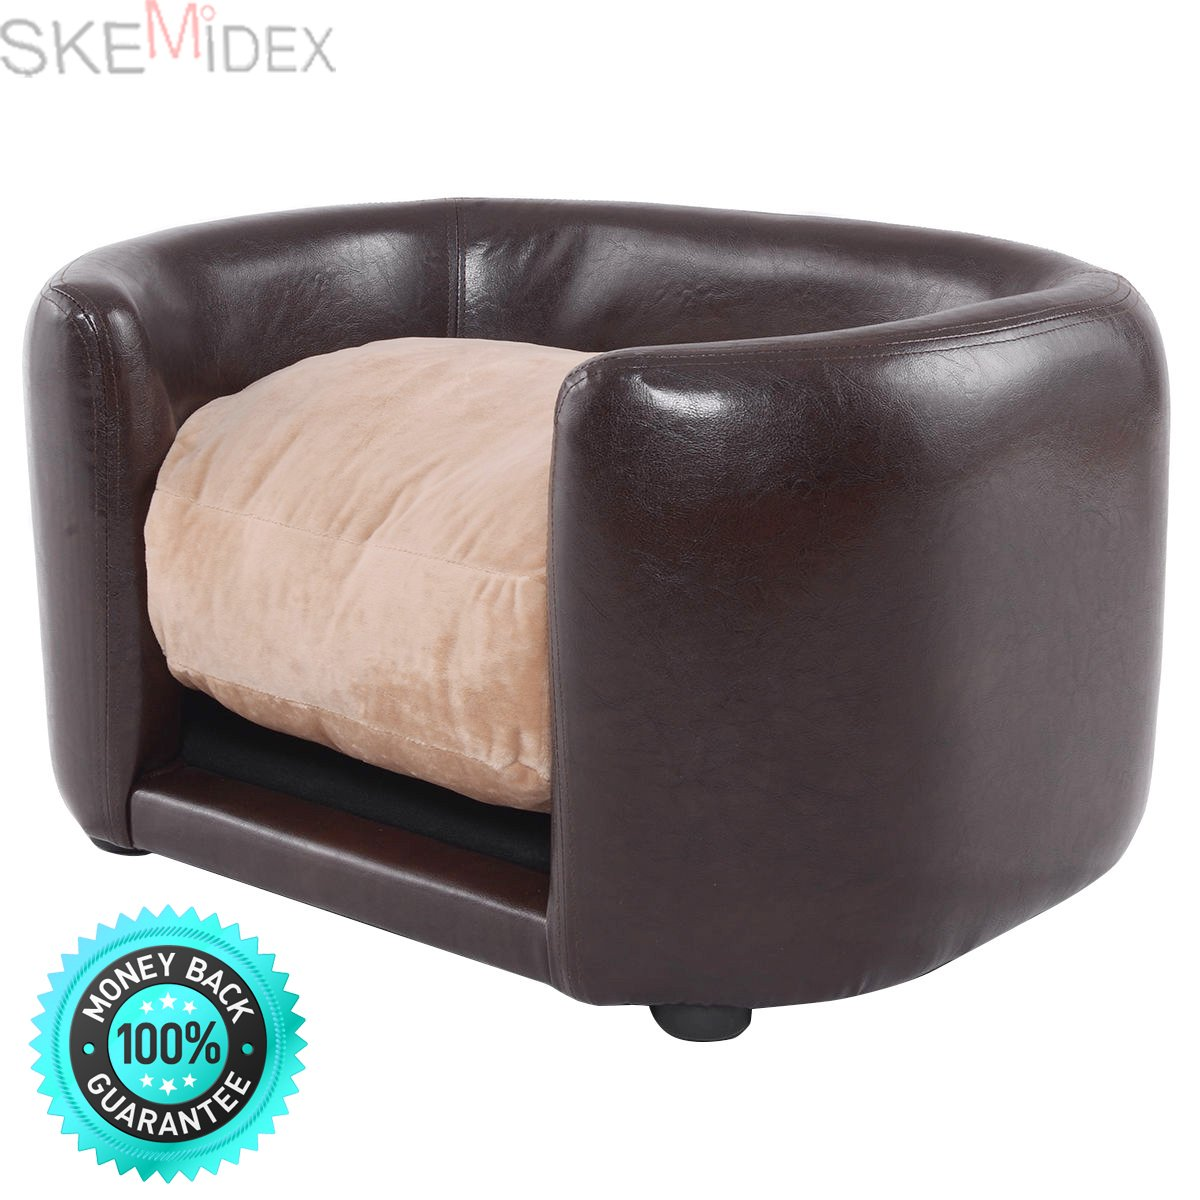 SKEMiDEX---Pet Sofa PVC Lounge Snuggle Soft Warm Dog Puppy Sleeping Bed w/ Cushion Brown. This super-soft pet bed with bolster is designed with comfort in mind The bolster is for your pet to rest